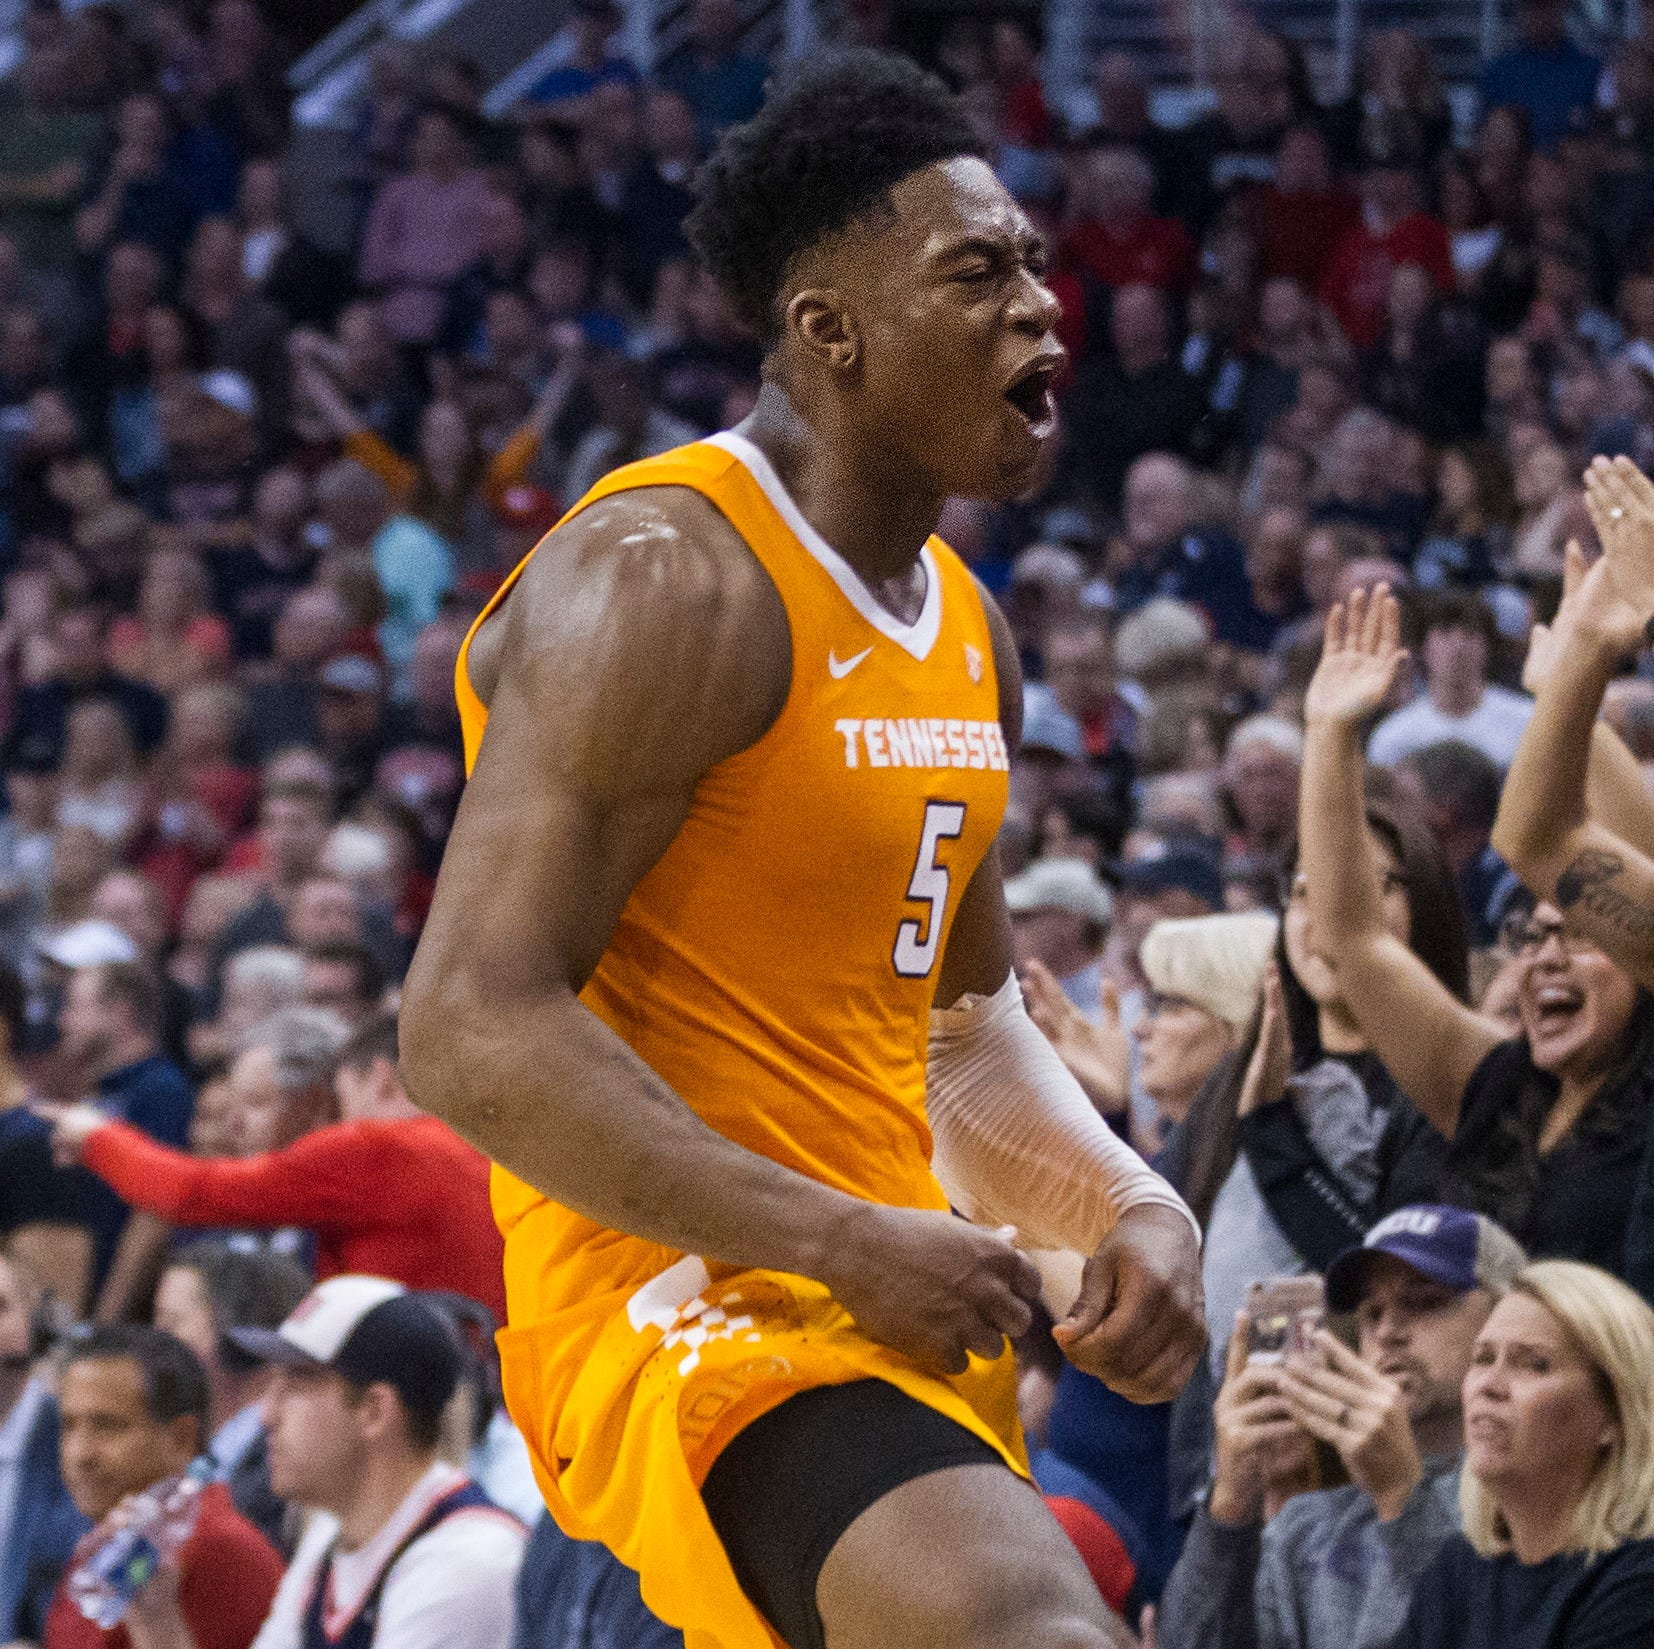 Rick Barnes' UT Vols can win it all, and what a refreshment that would be